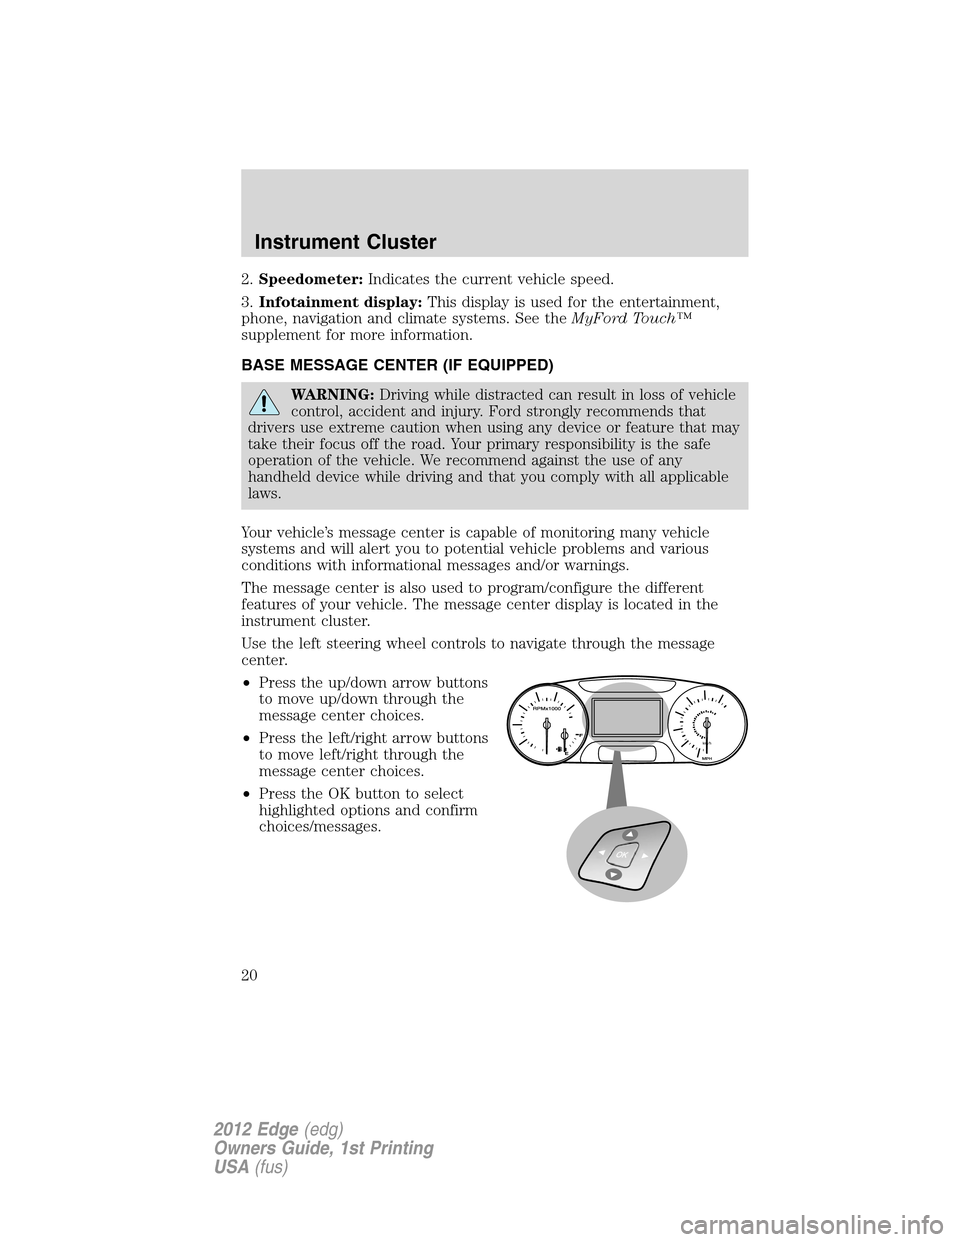 FORD EDGE 2012 1.G Owners Manual, Page 20